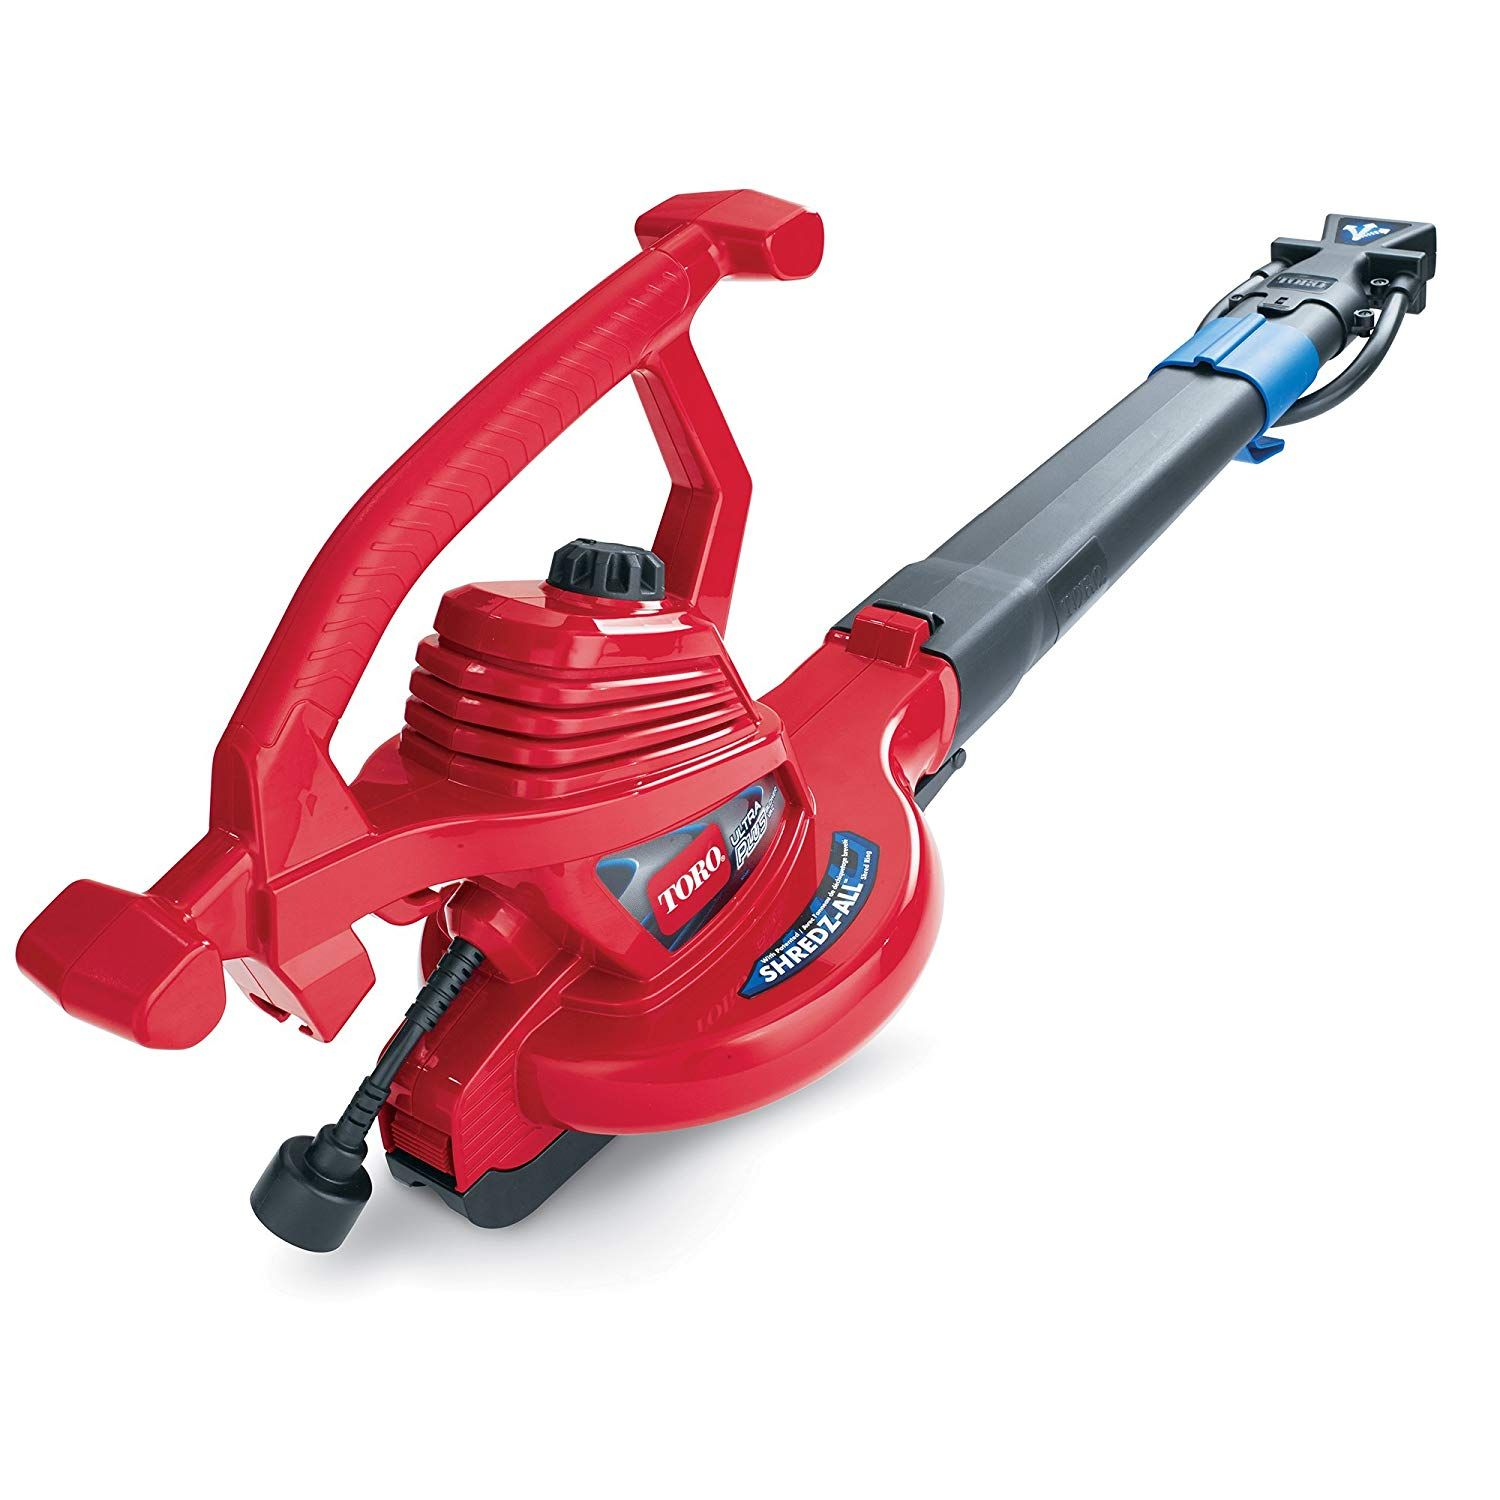 19 Best Gas Leaf Blower In 2020